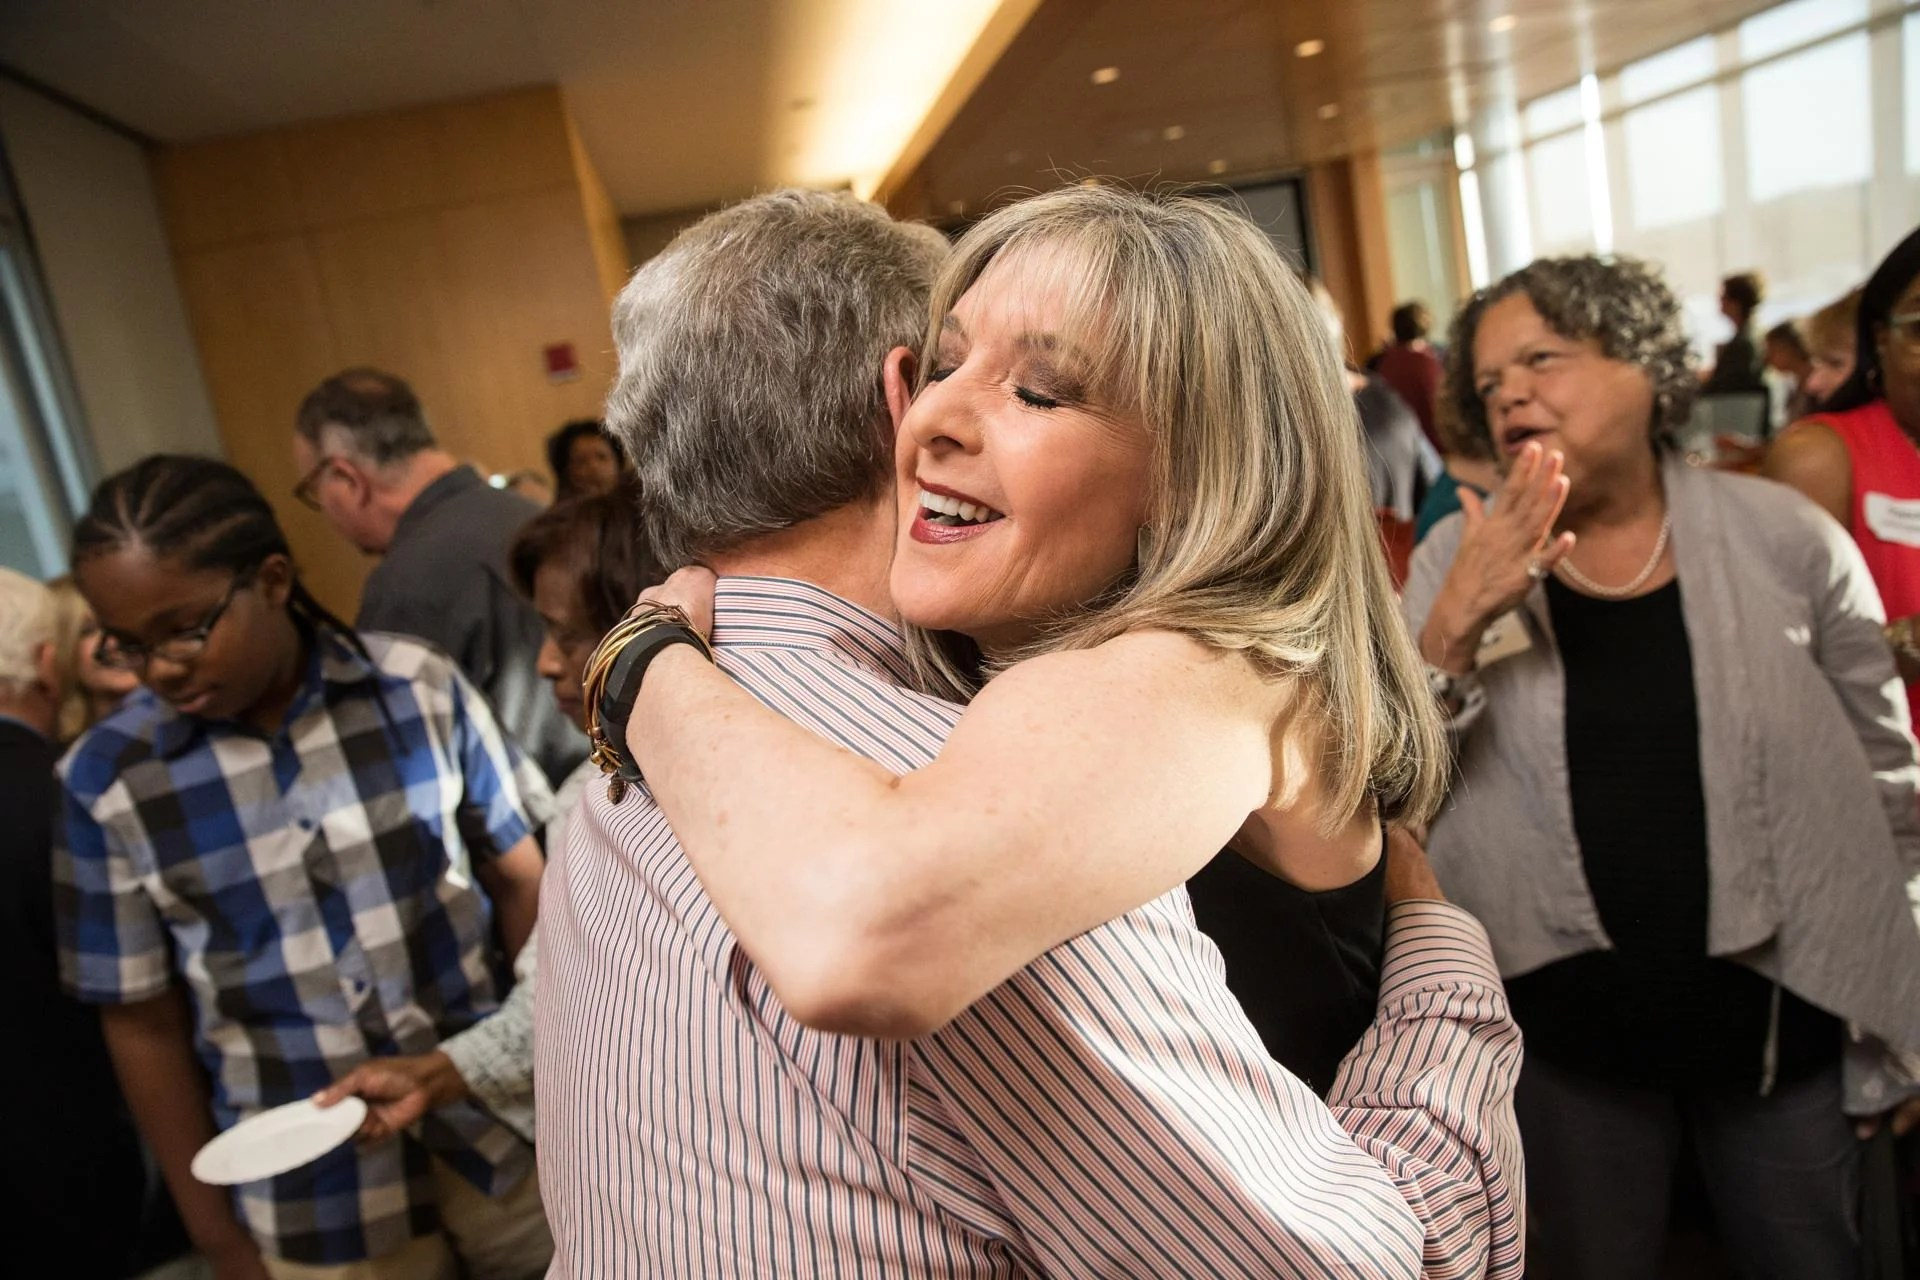 06/14/2017 BOSTON, MA Hank Phillippi Ryan (cq) hugs Mike Lawrence (cq) during a cocktail party at WGBH studios. (Aram Boghosian for The Boston Globe)